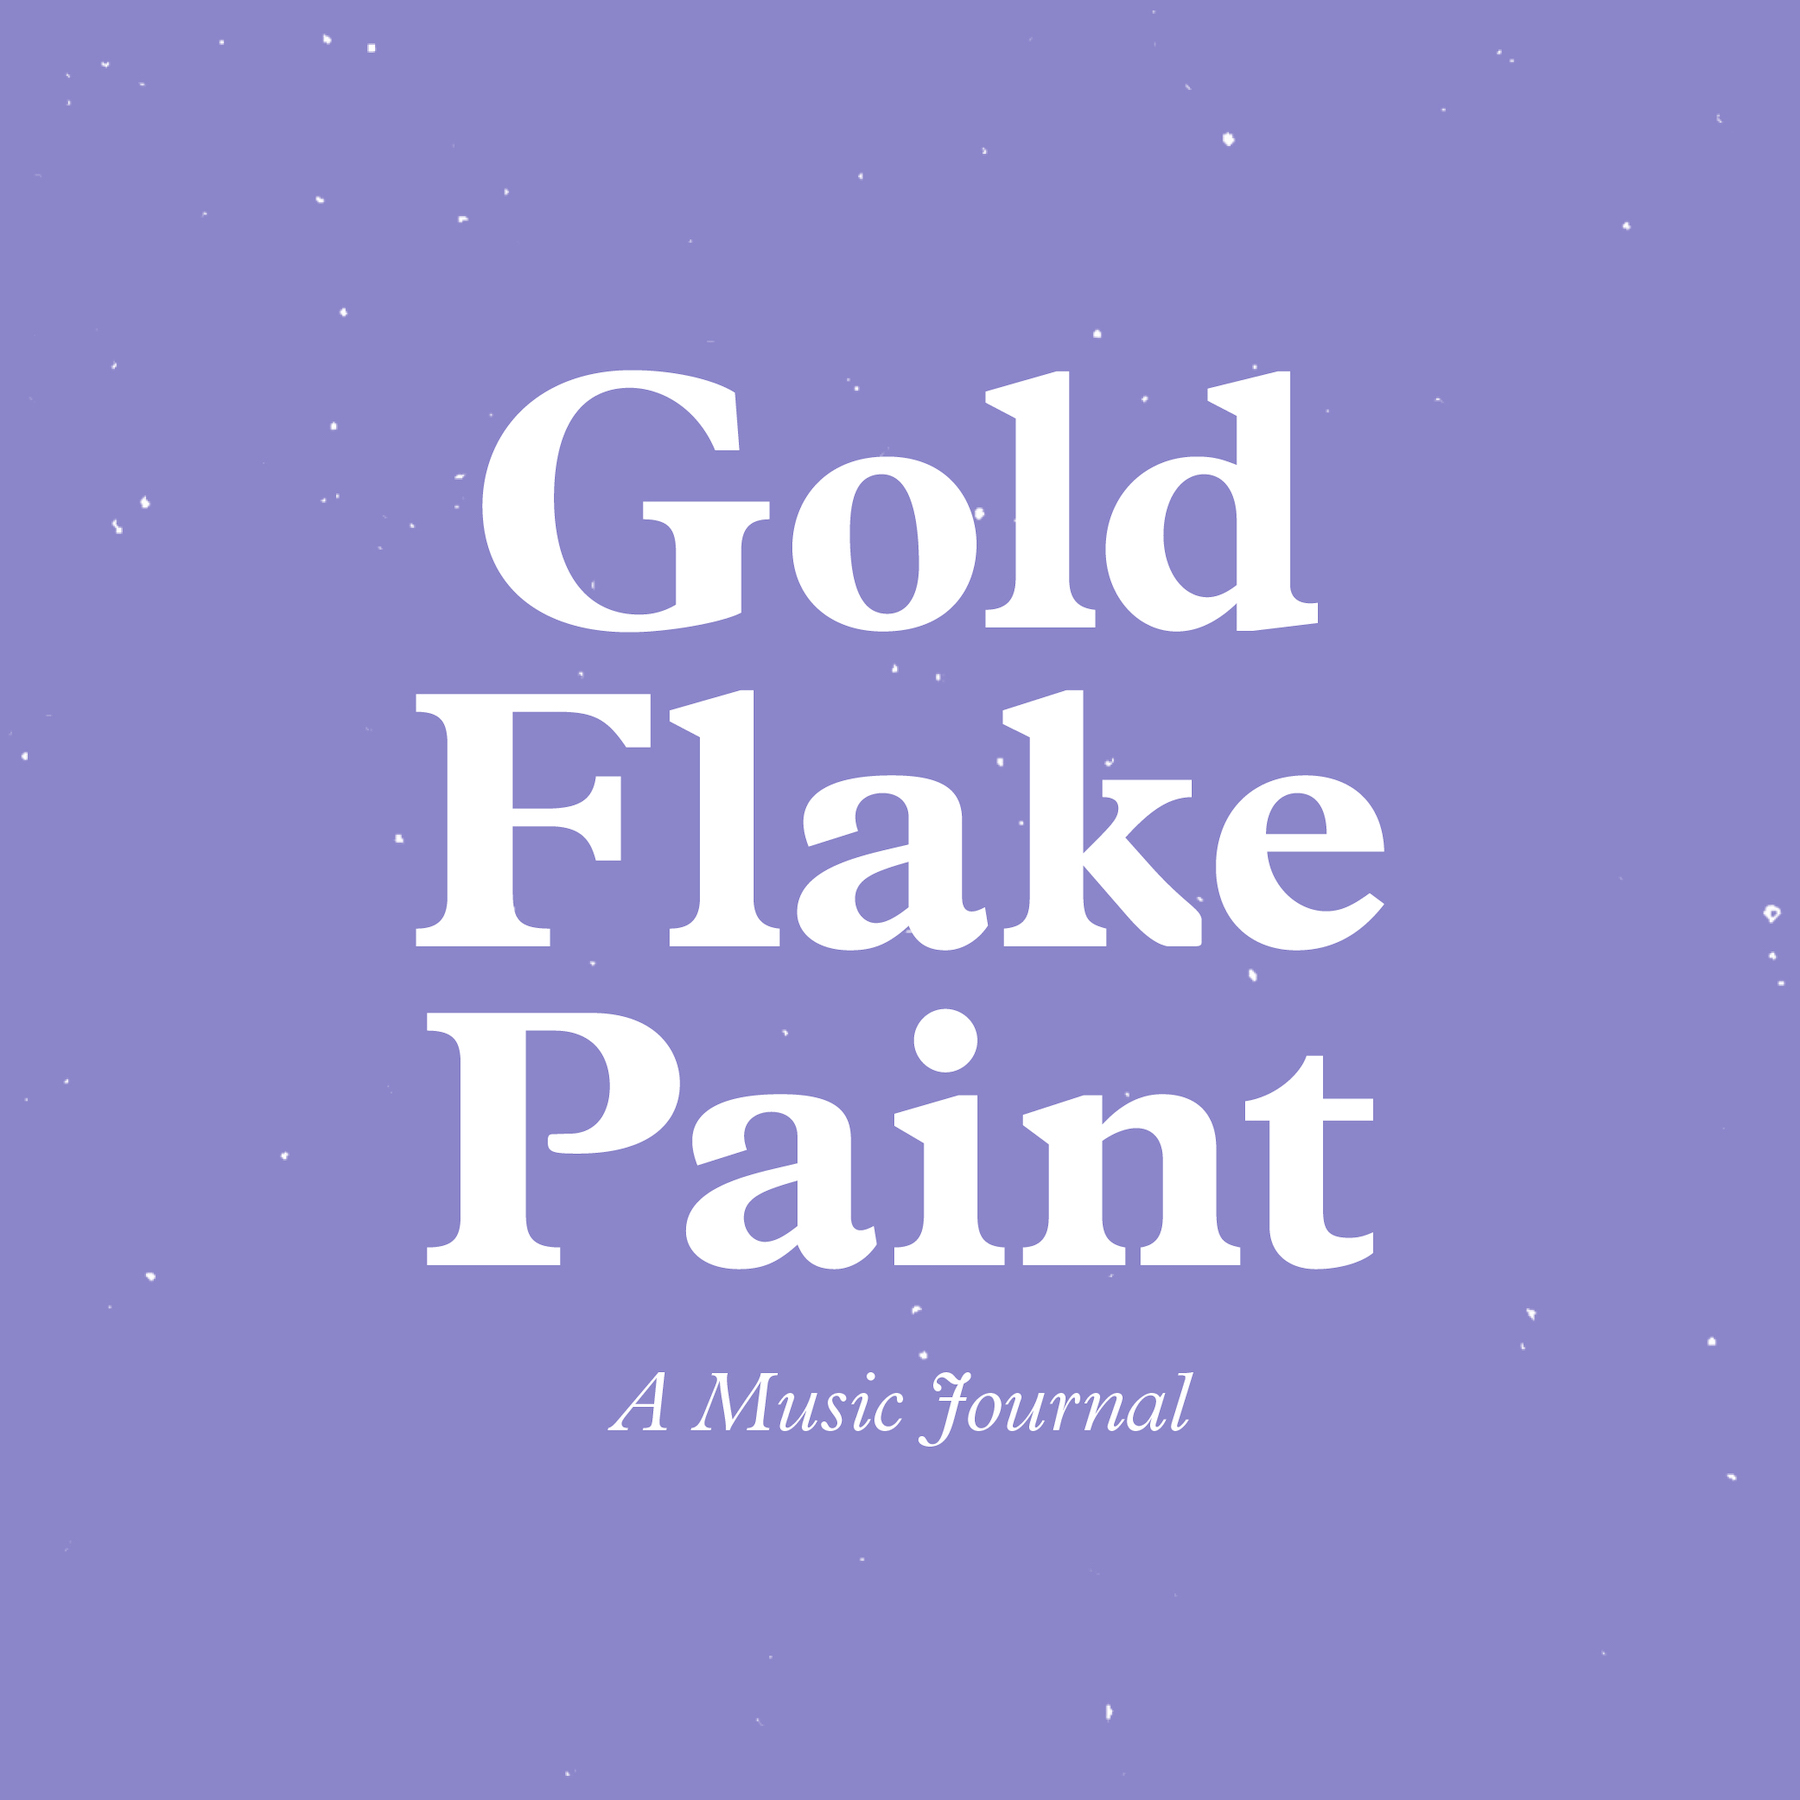 Gold Flake Paint